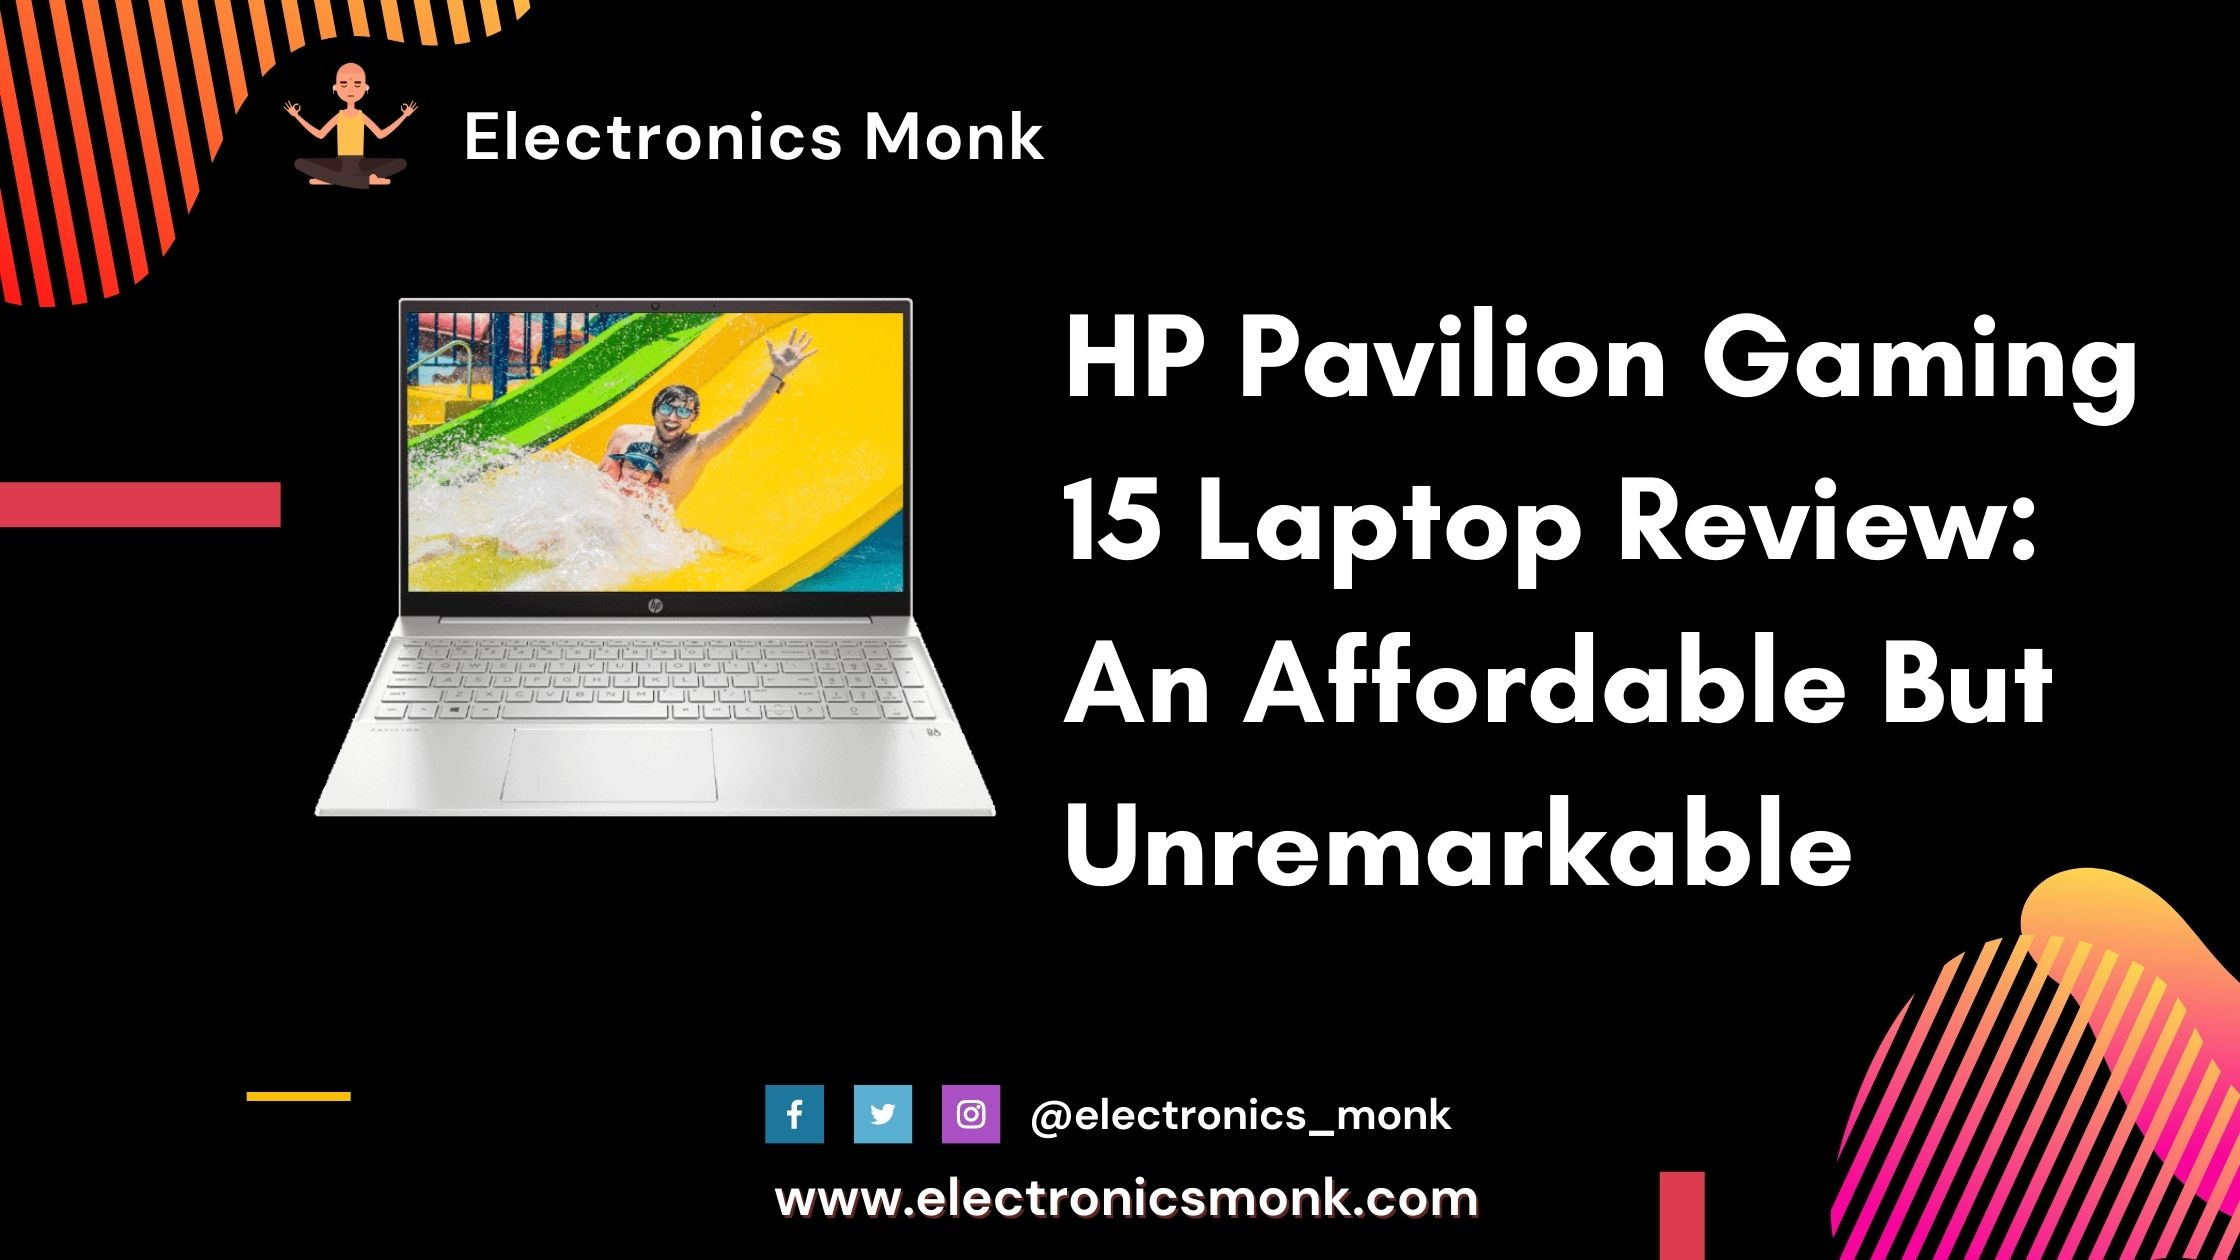 HP Pavilion Gaming 15 Laptop Review: An Affordable But Unremarkable